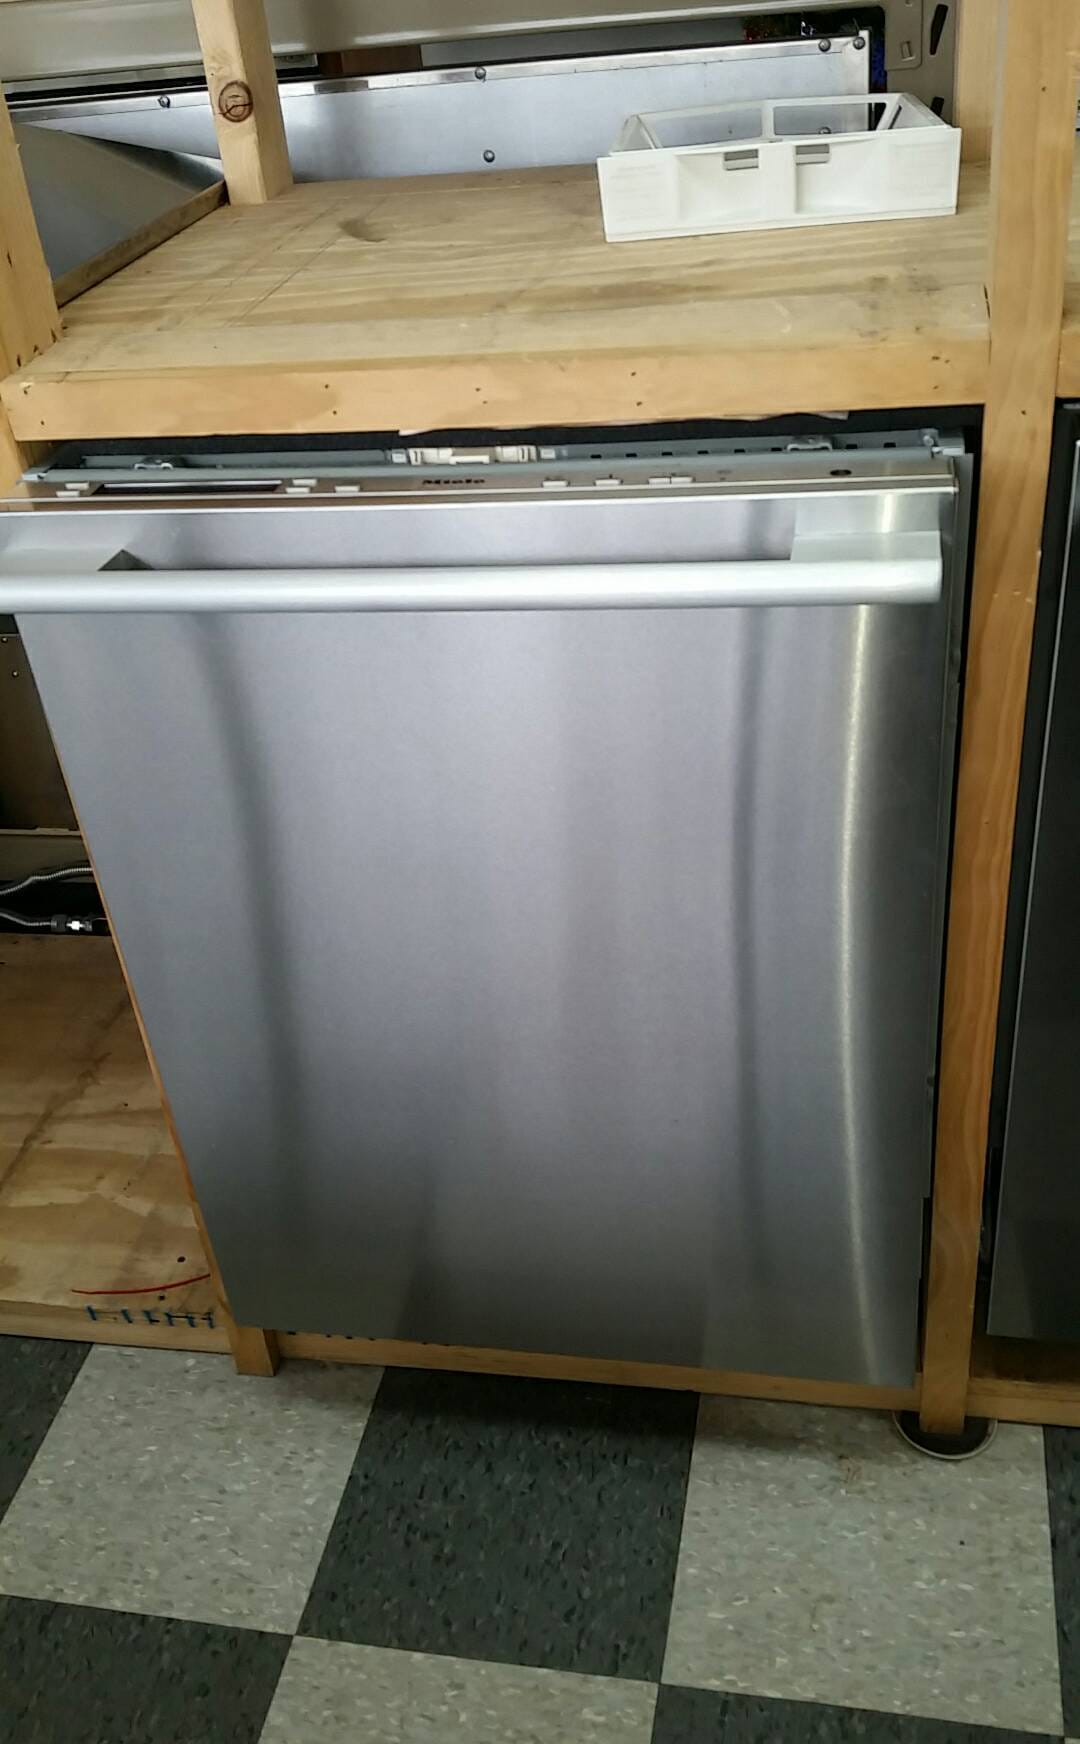 Miele G2872 Dishwasher Appliance Marshall Repair